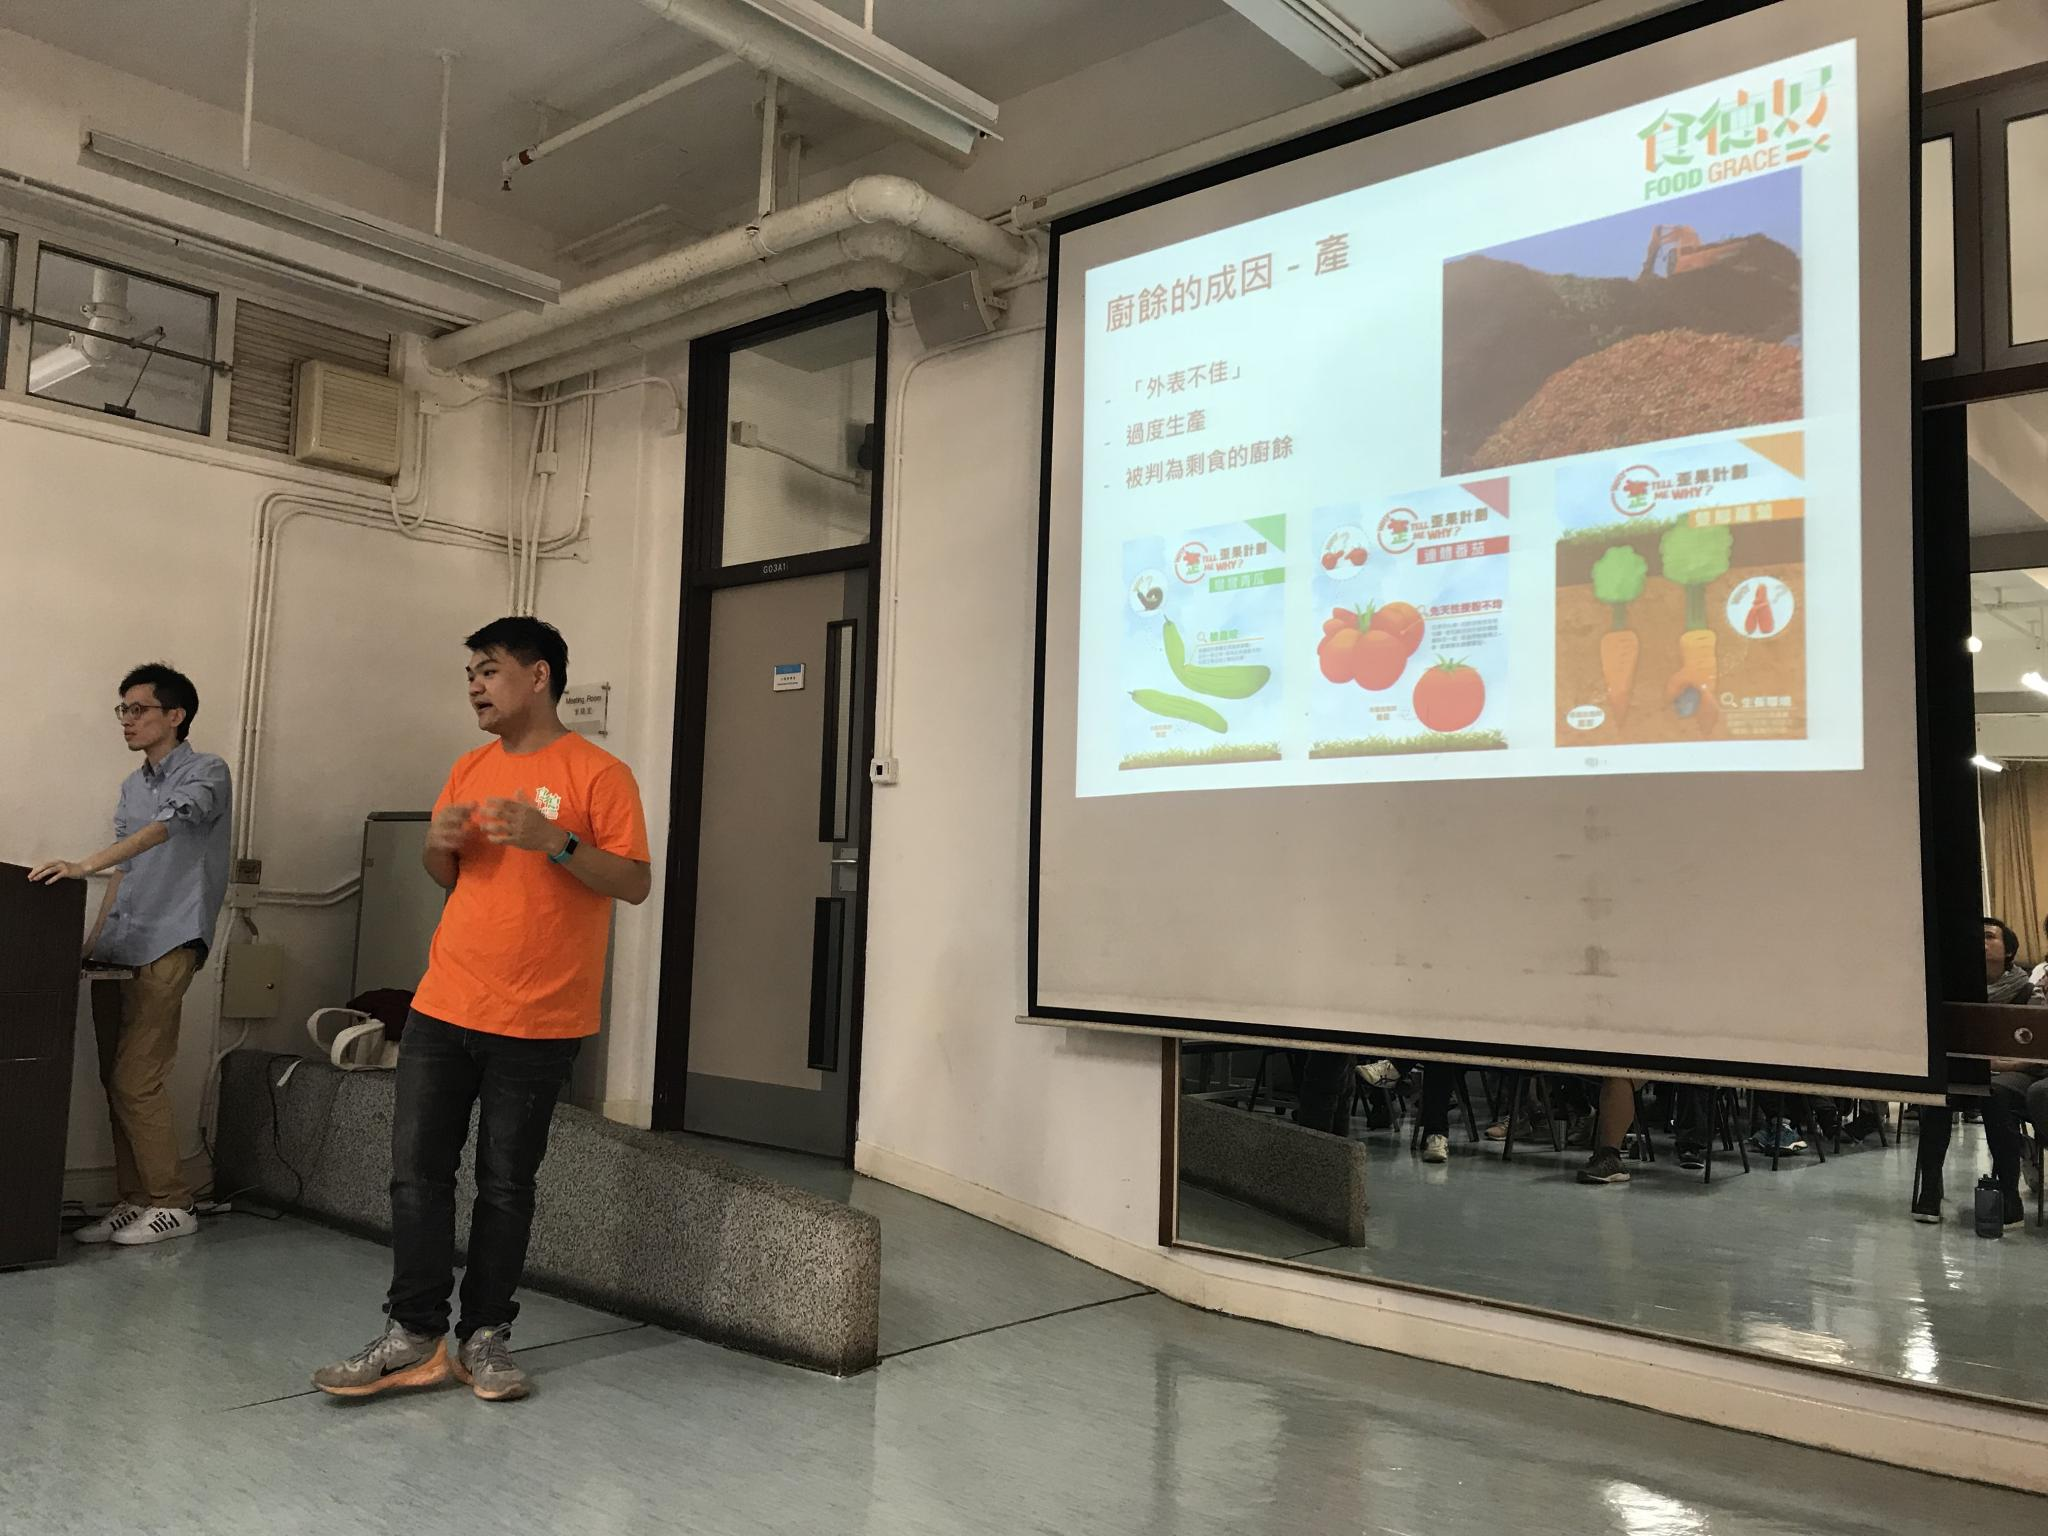 Mr. Wong from Food Grace was invited to provide a talk about food waste.